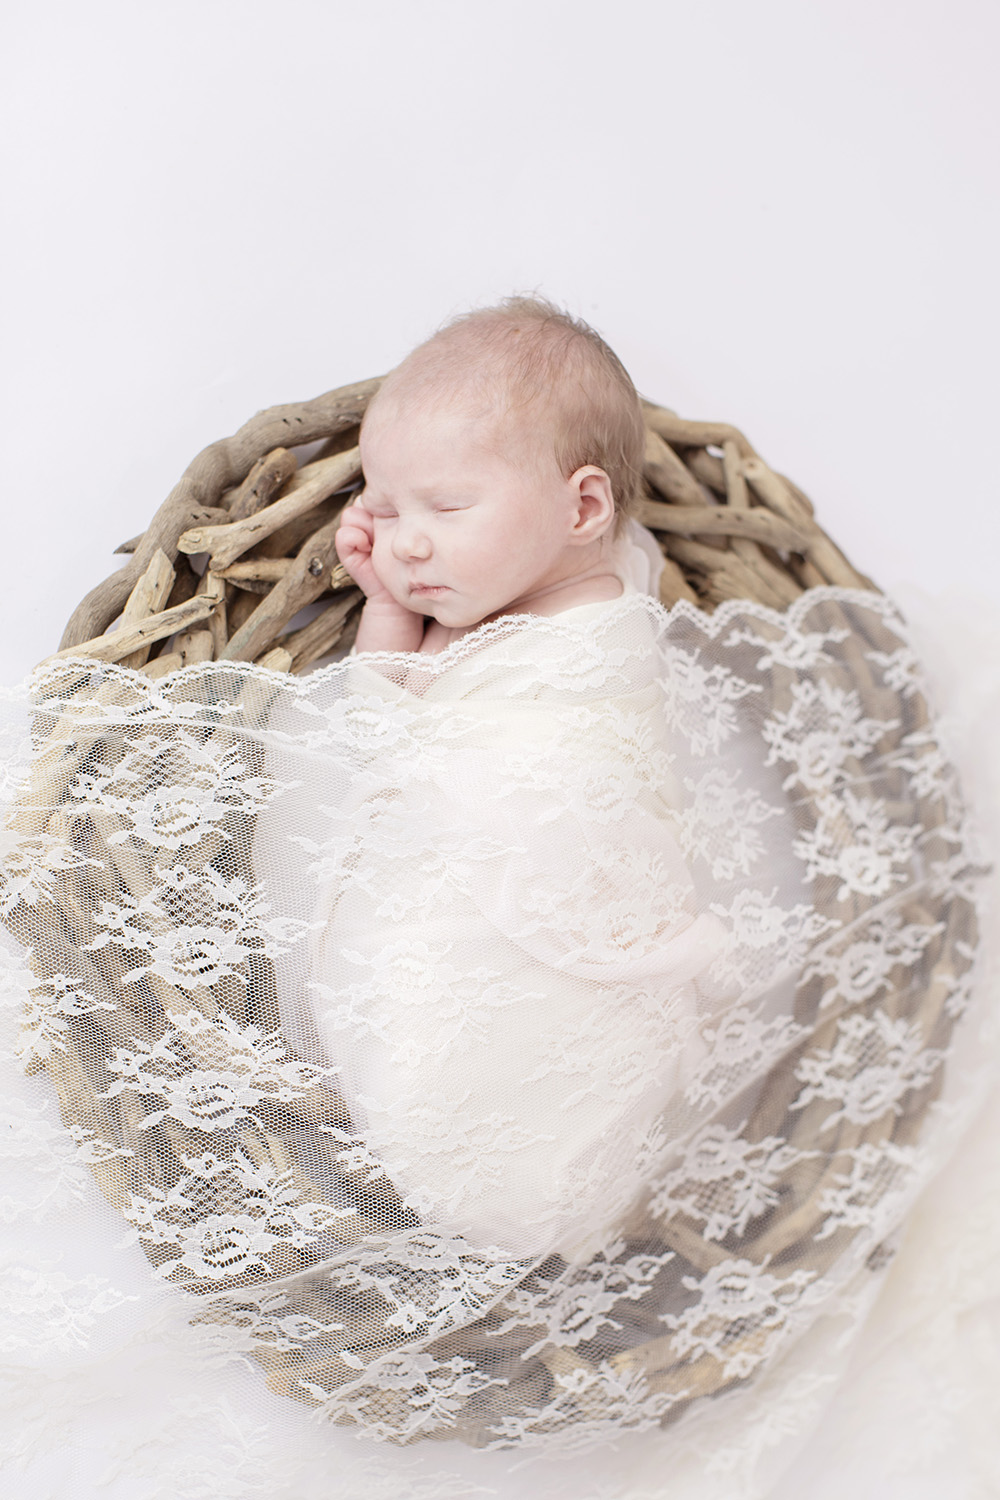 Ocean-Springs-Newborn-Photographer-Swetman-Photography-Lace-Blanket-Driftwood-Baby-Eleanor.jpg